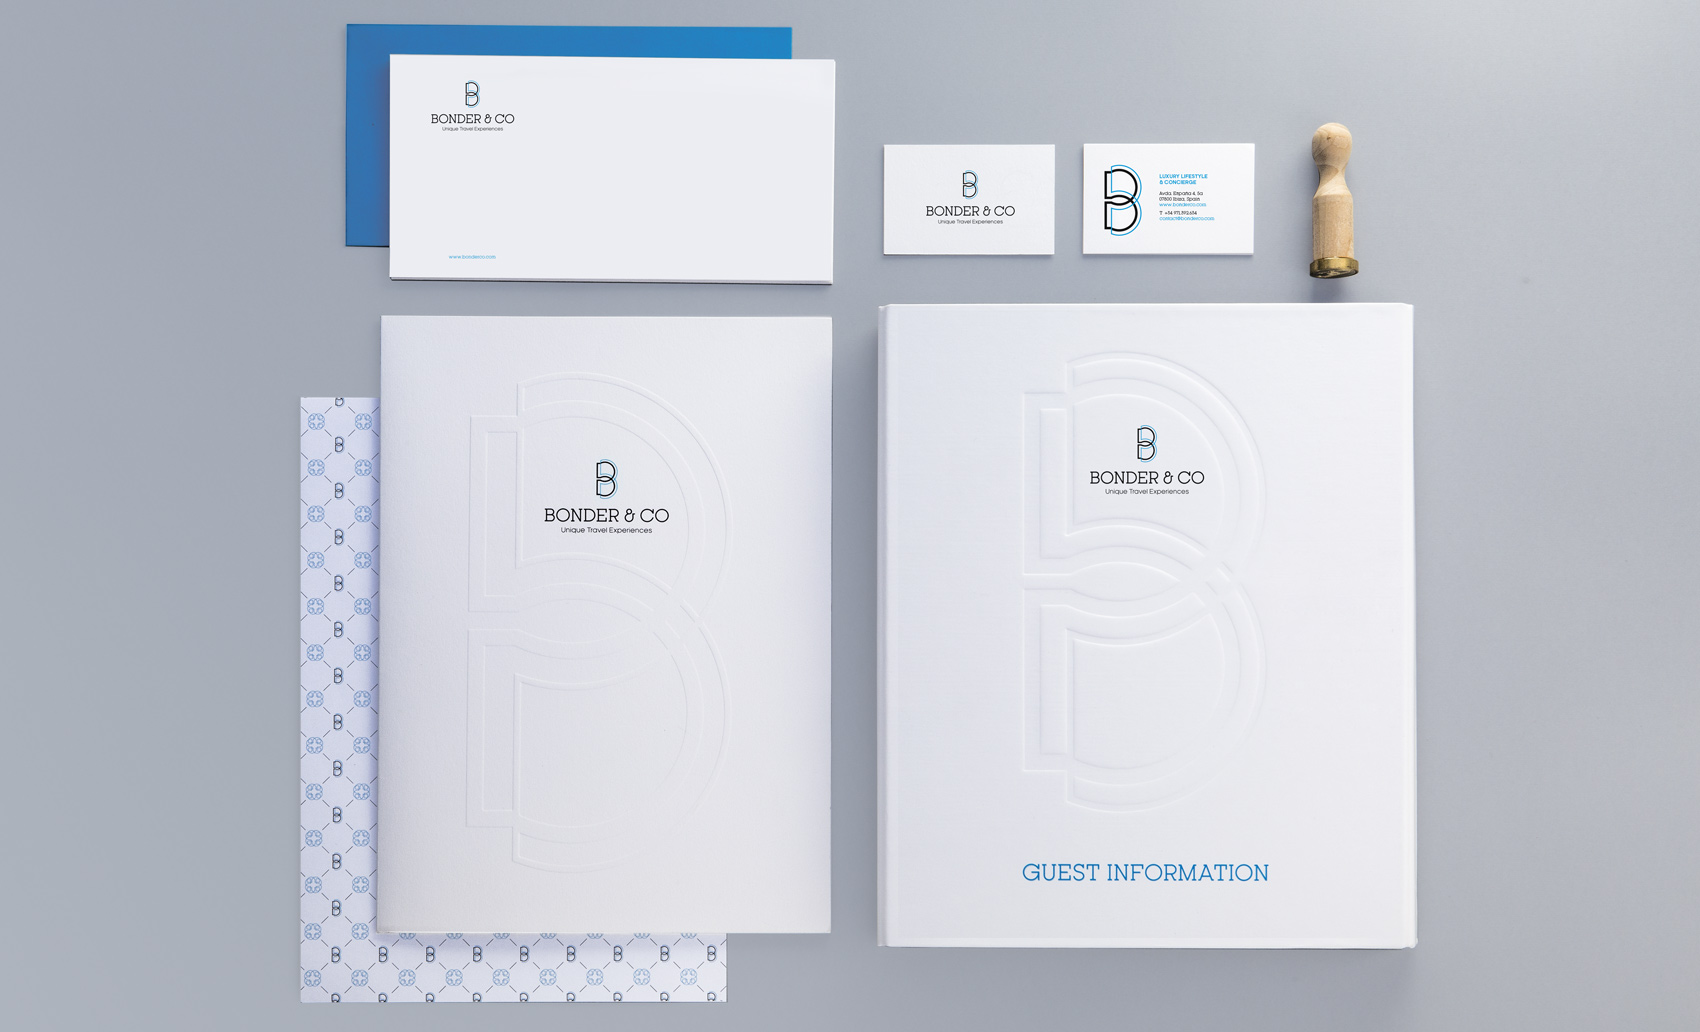 OffCourse Bonderco slider brand stationary corporate logo